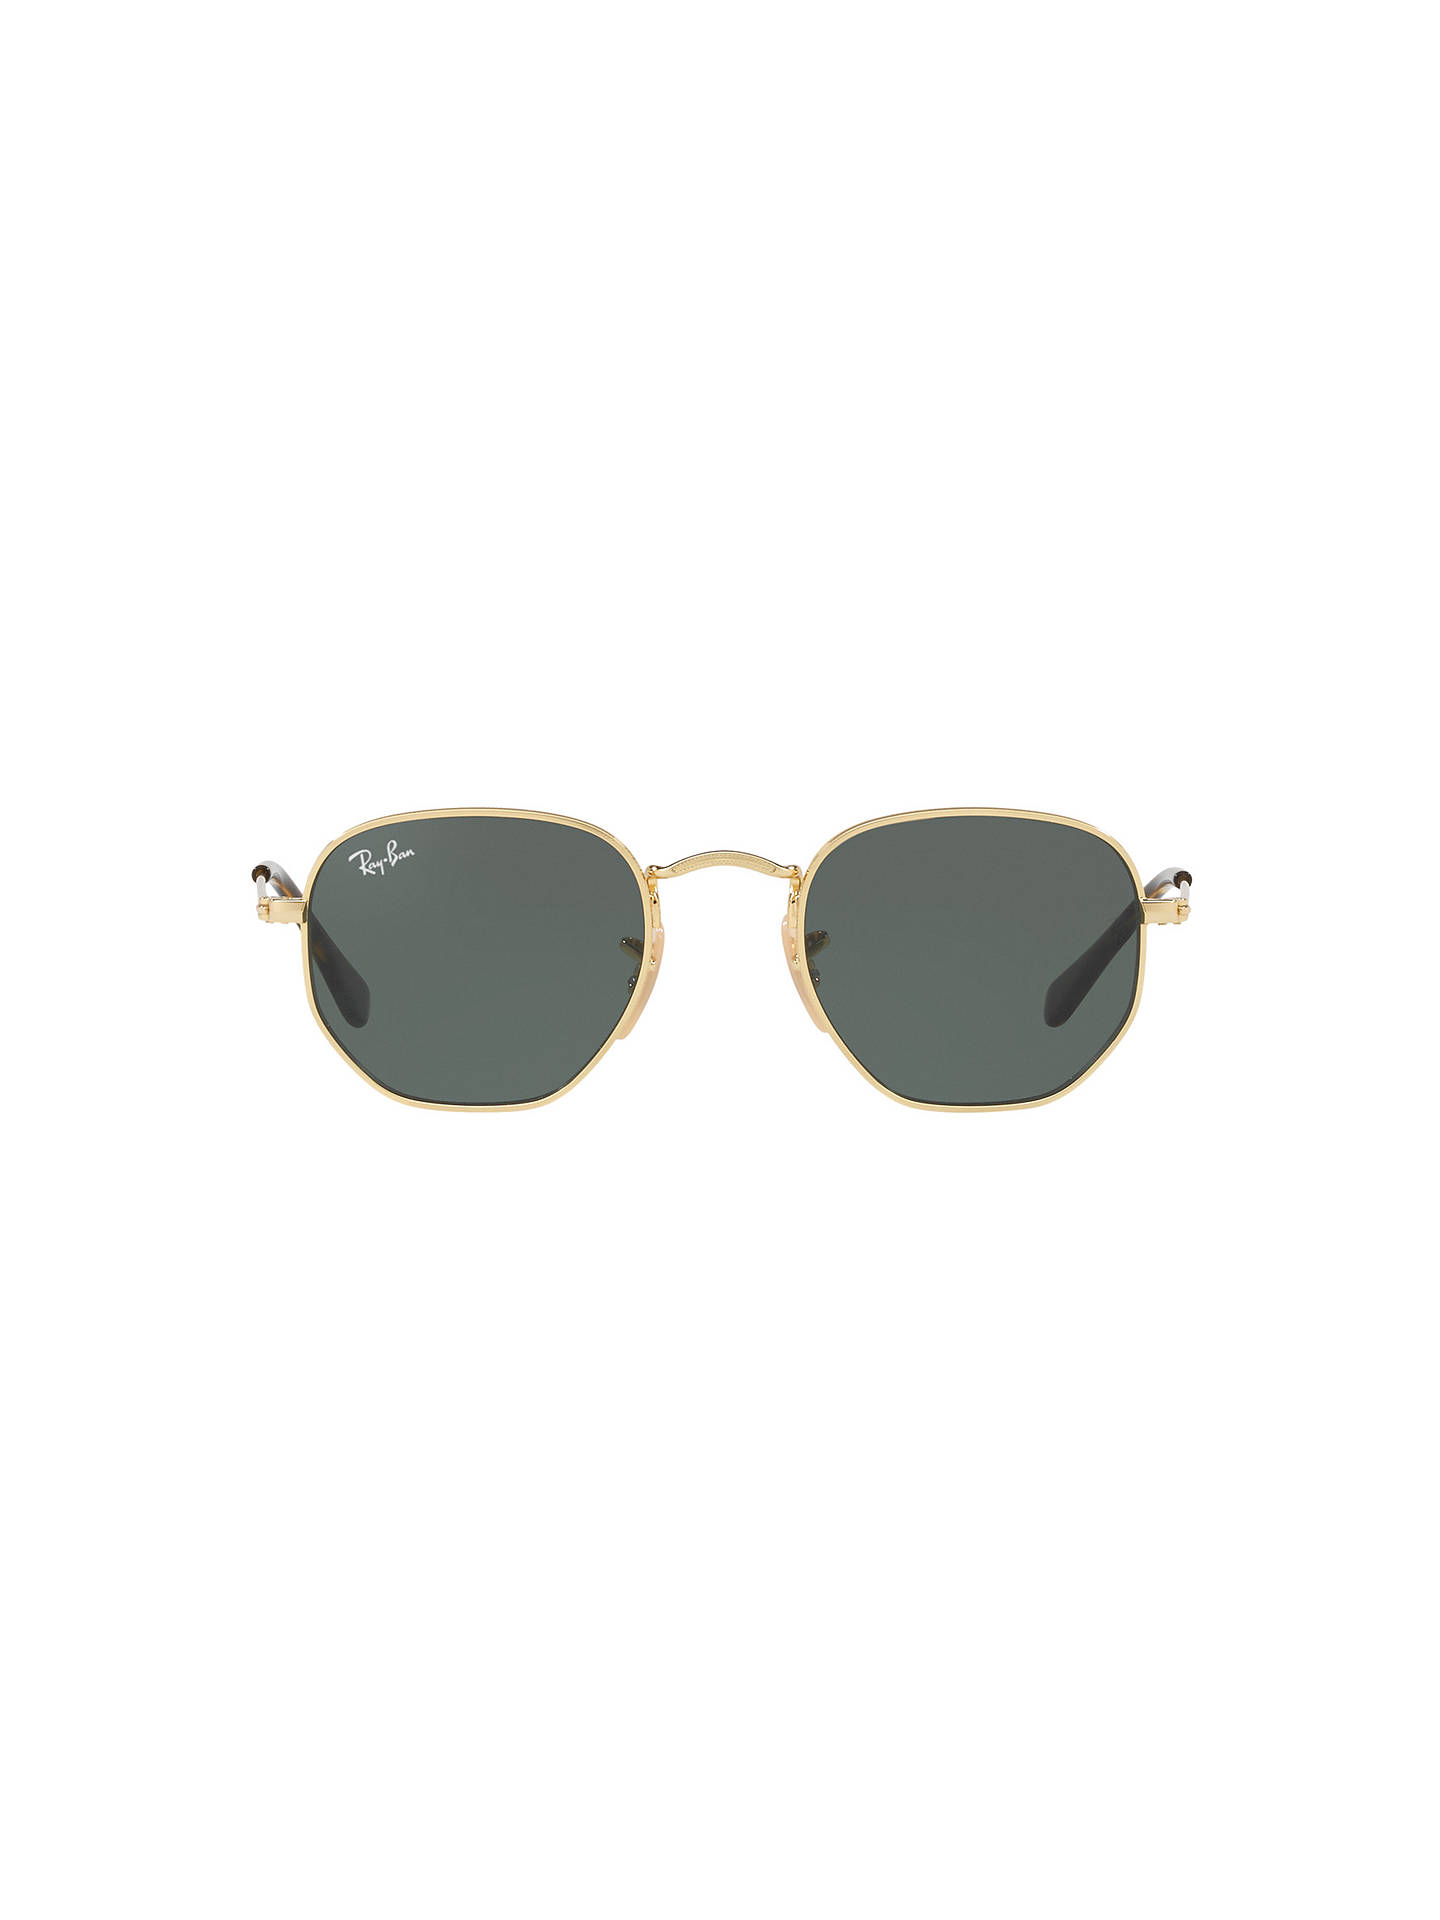 Buy Ray-Ban Junior RJ9541SN Oval Sunglasses, Gold/Green Online at johnlewis.com